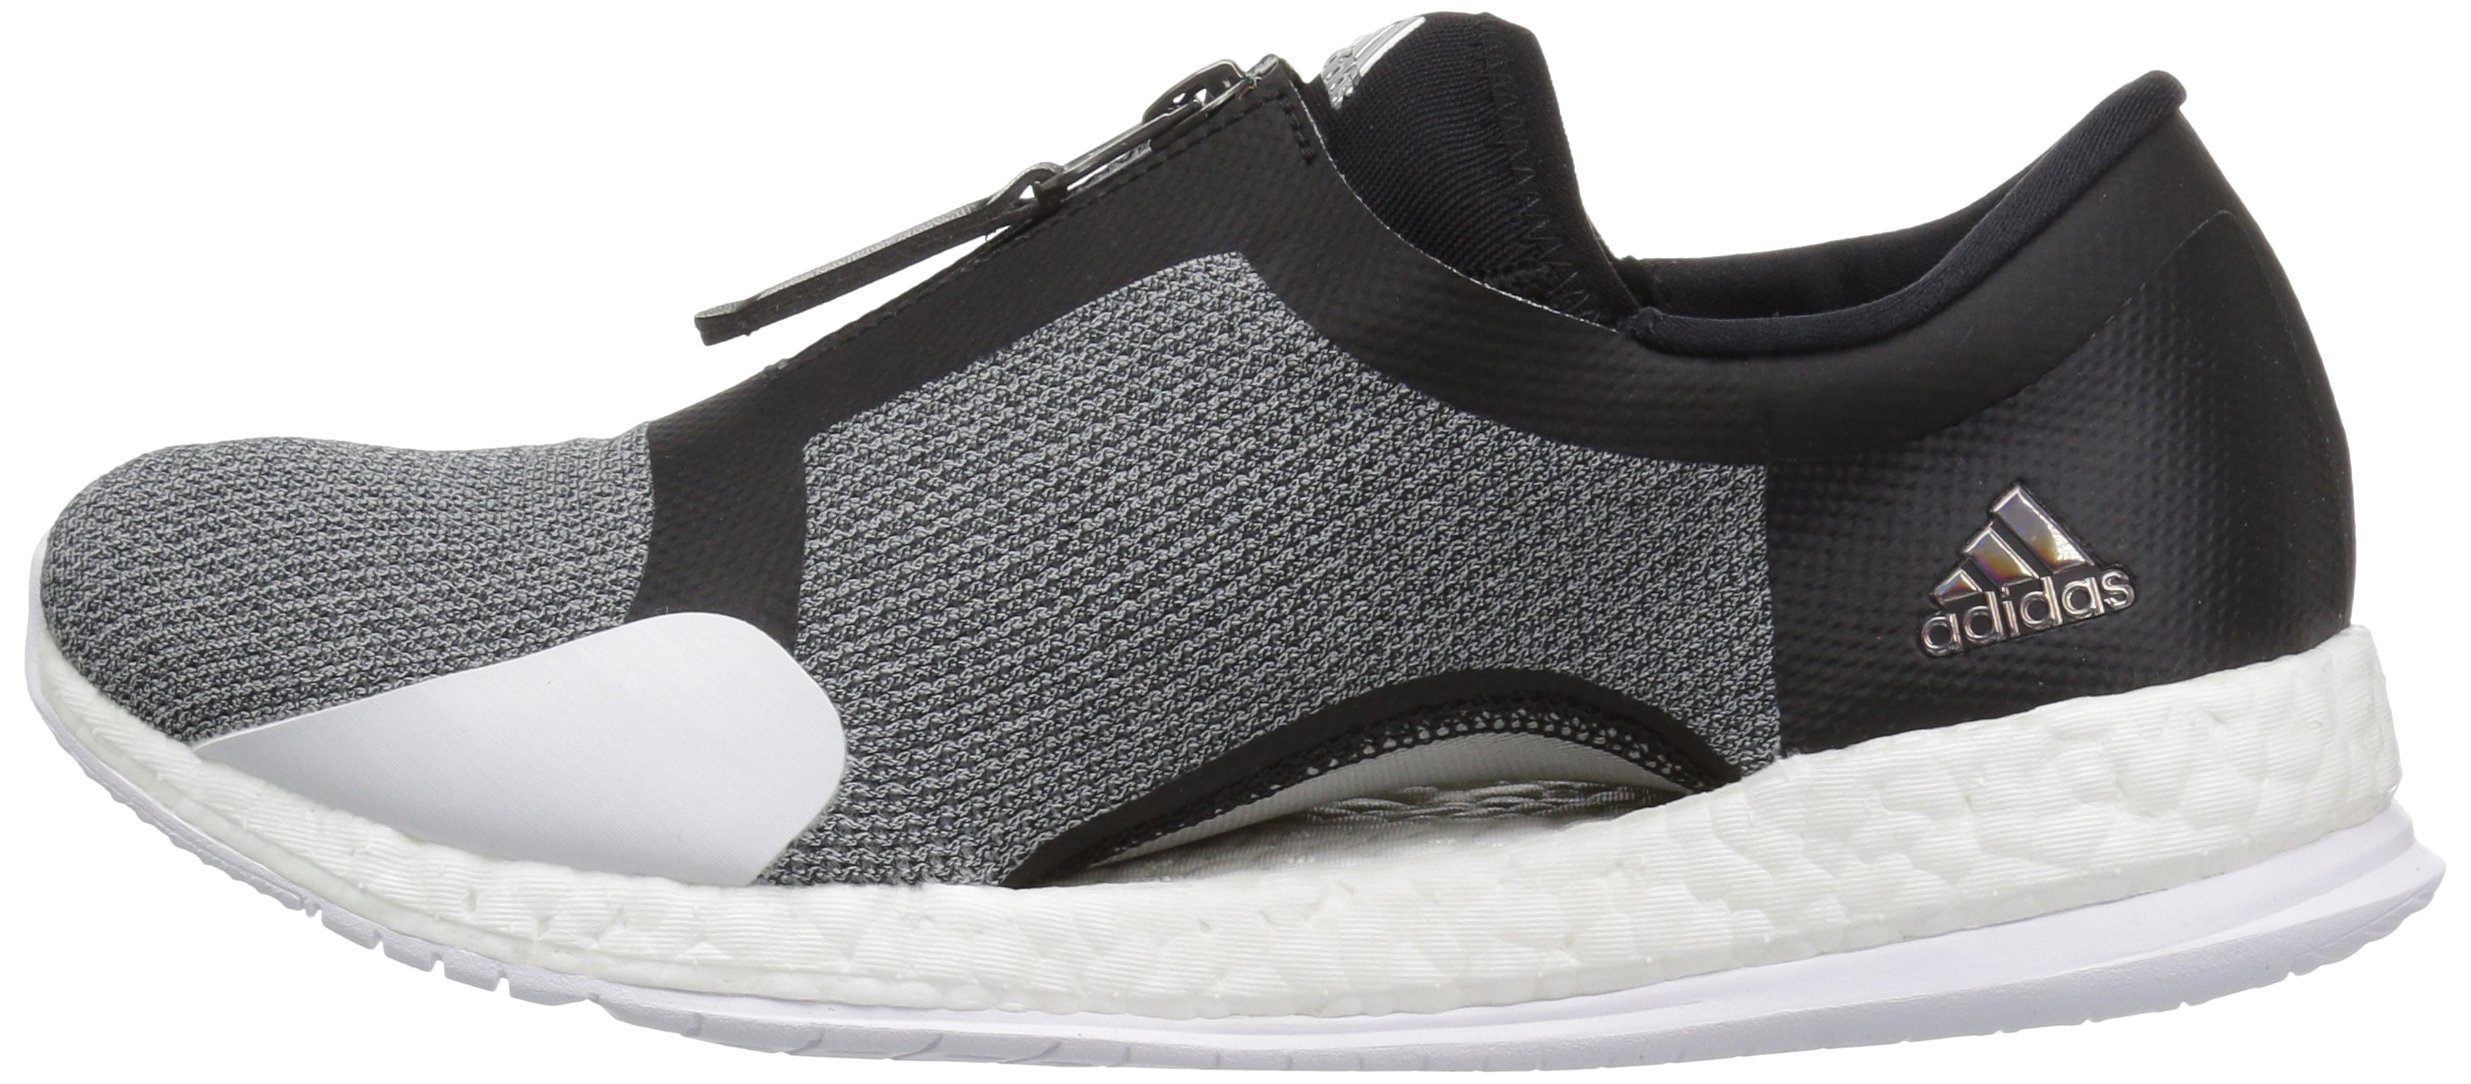 81gfO0kzT5L - adidas Womens Pure Boost x tr Zip Low Top Slip On Fashion Sneakers